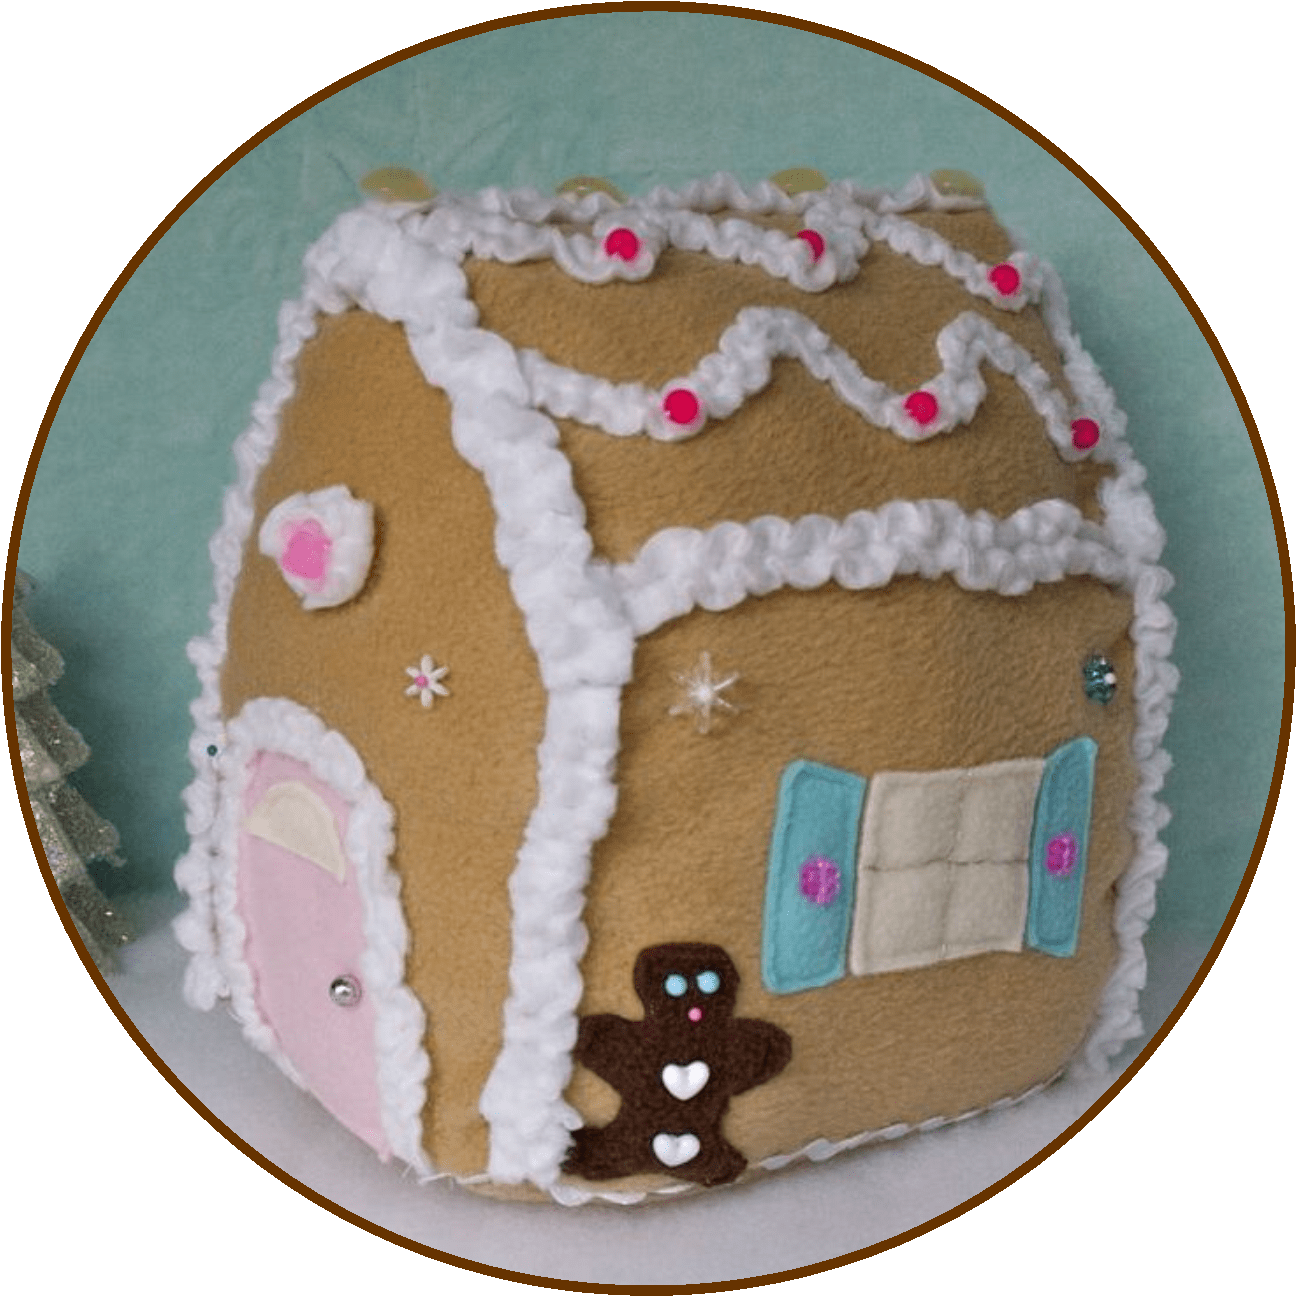 Transparent cute gingerbread house clipart - Door Clipart Gingerbread House - Gingerbread House